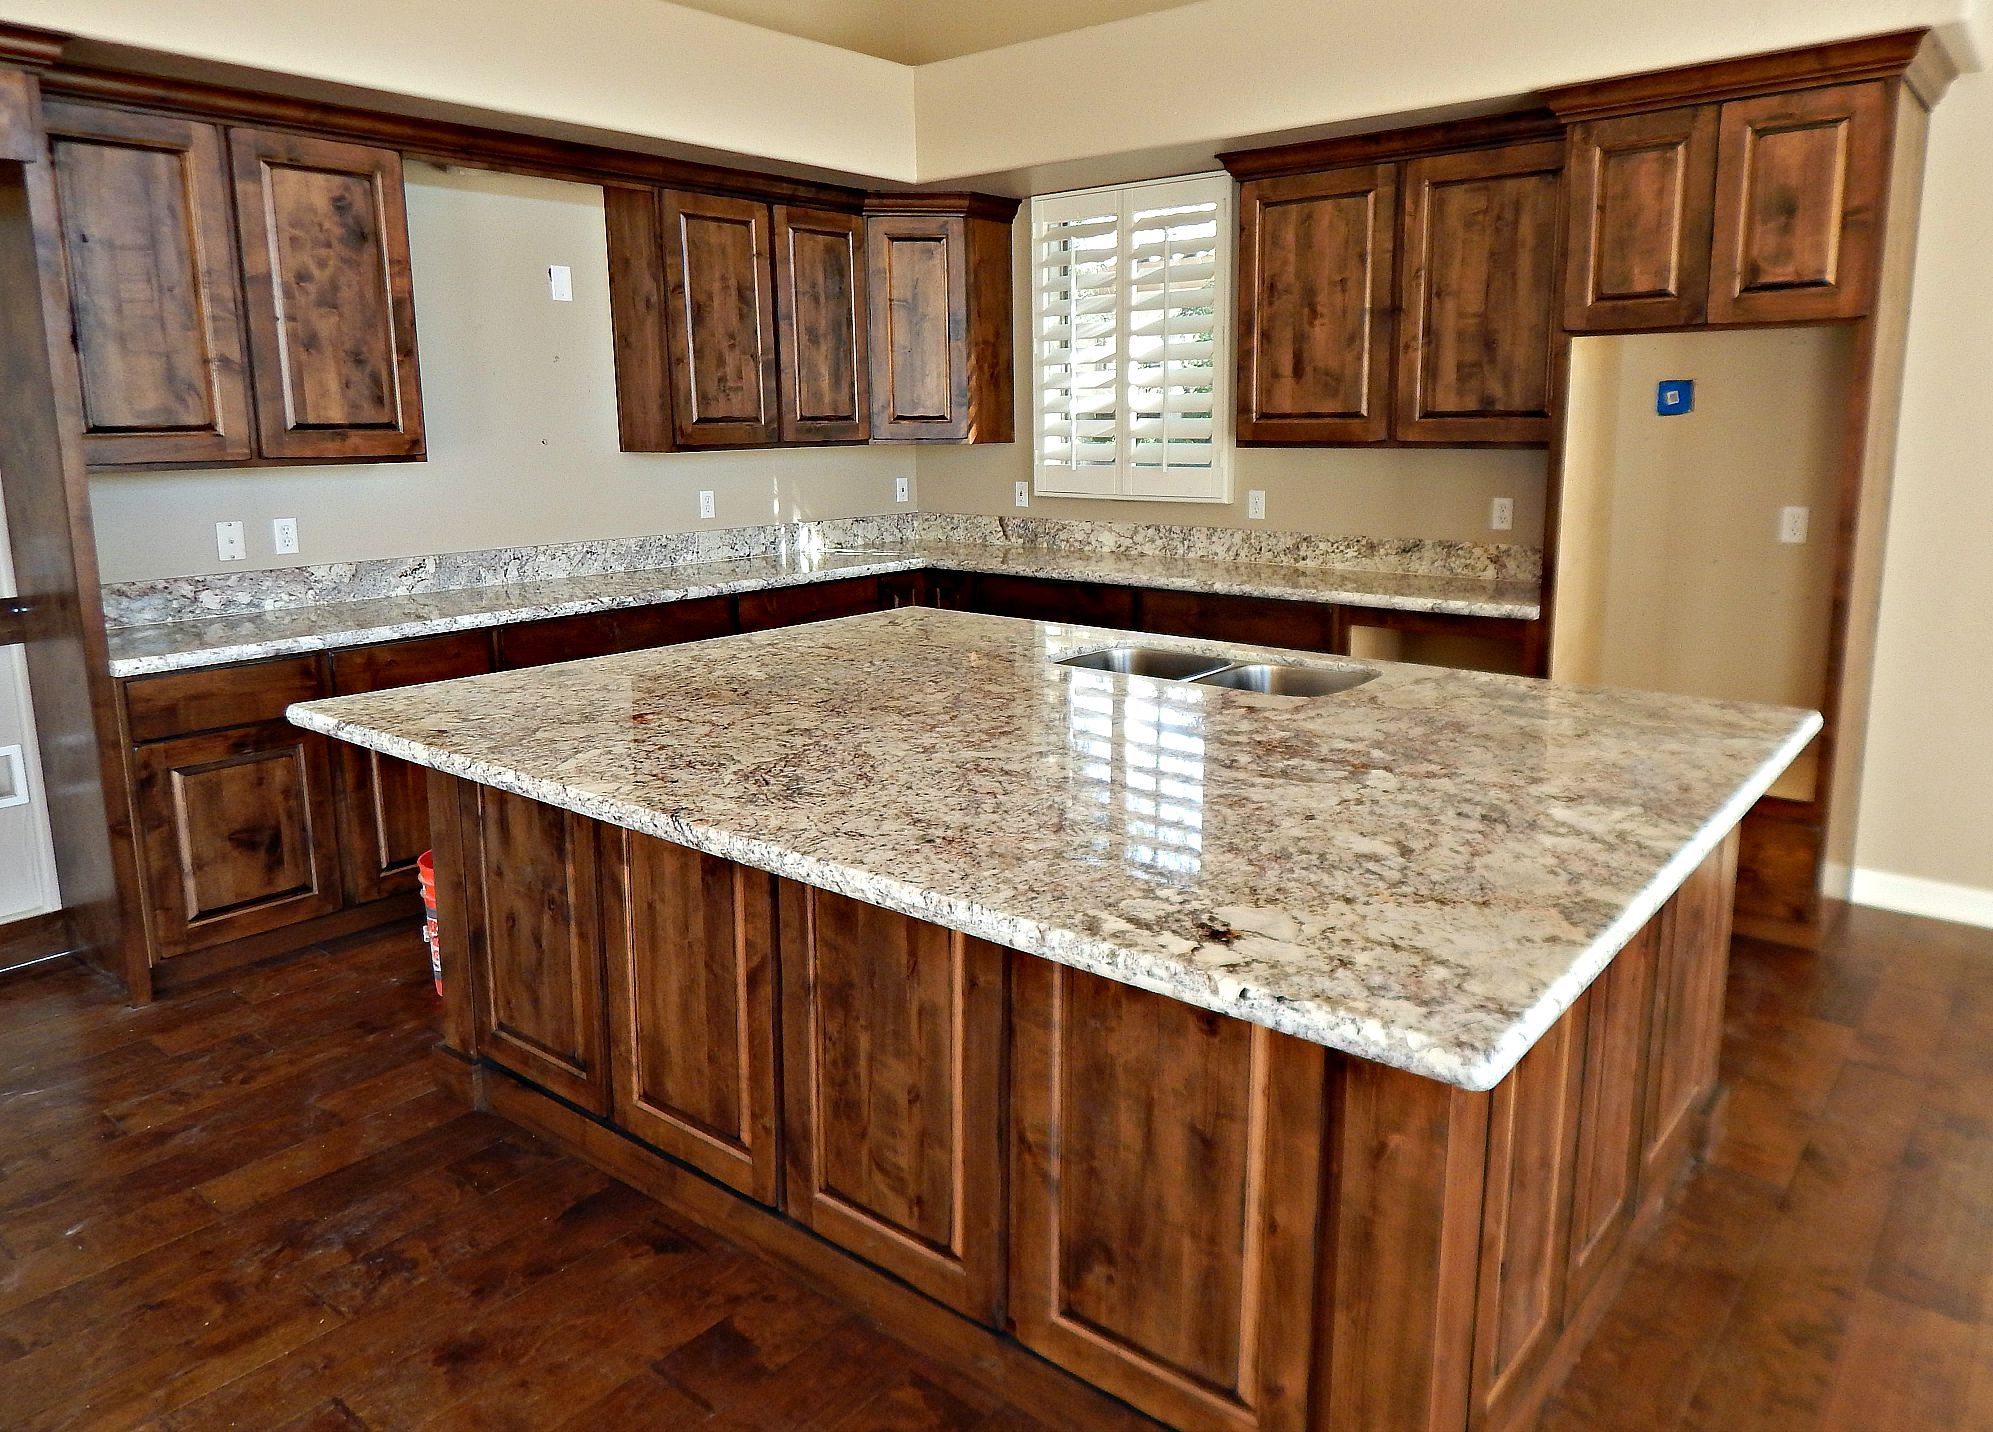 What Color Countertops Go With White Cabinets White Springs Granite Countertop Remodel With Half Moon